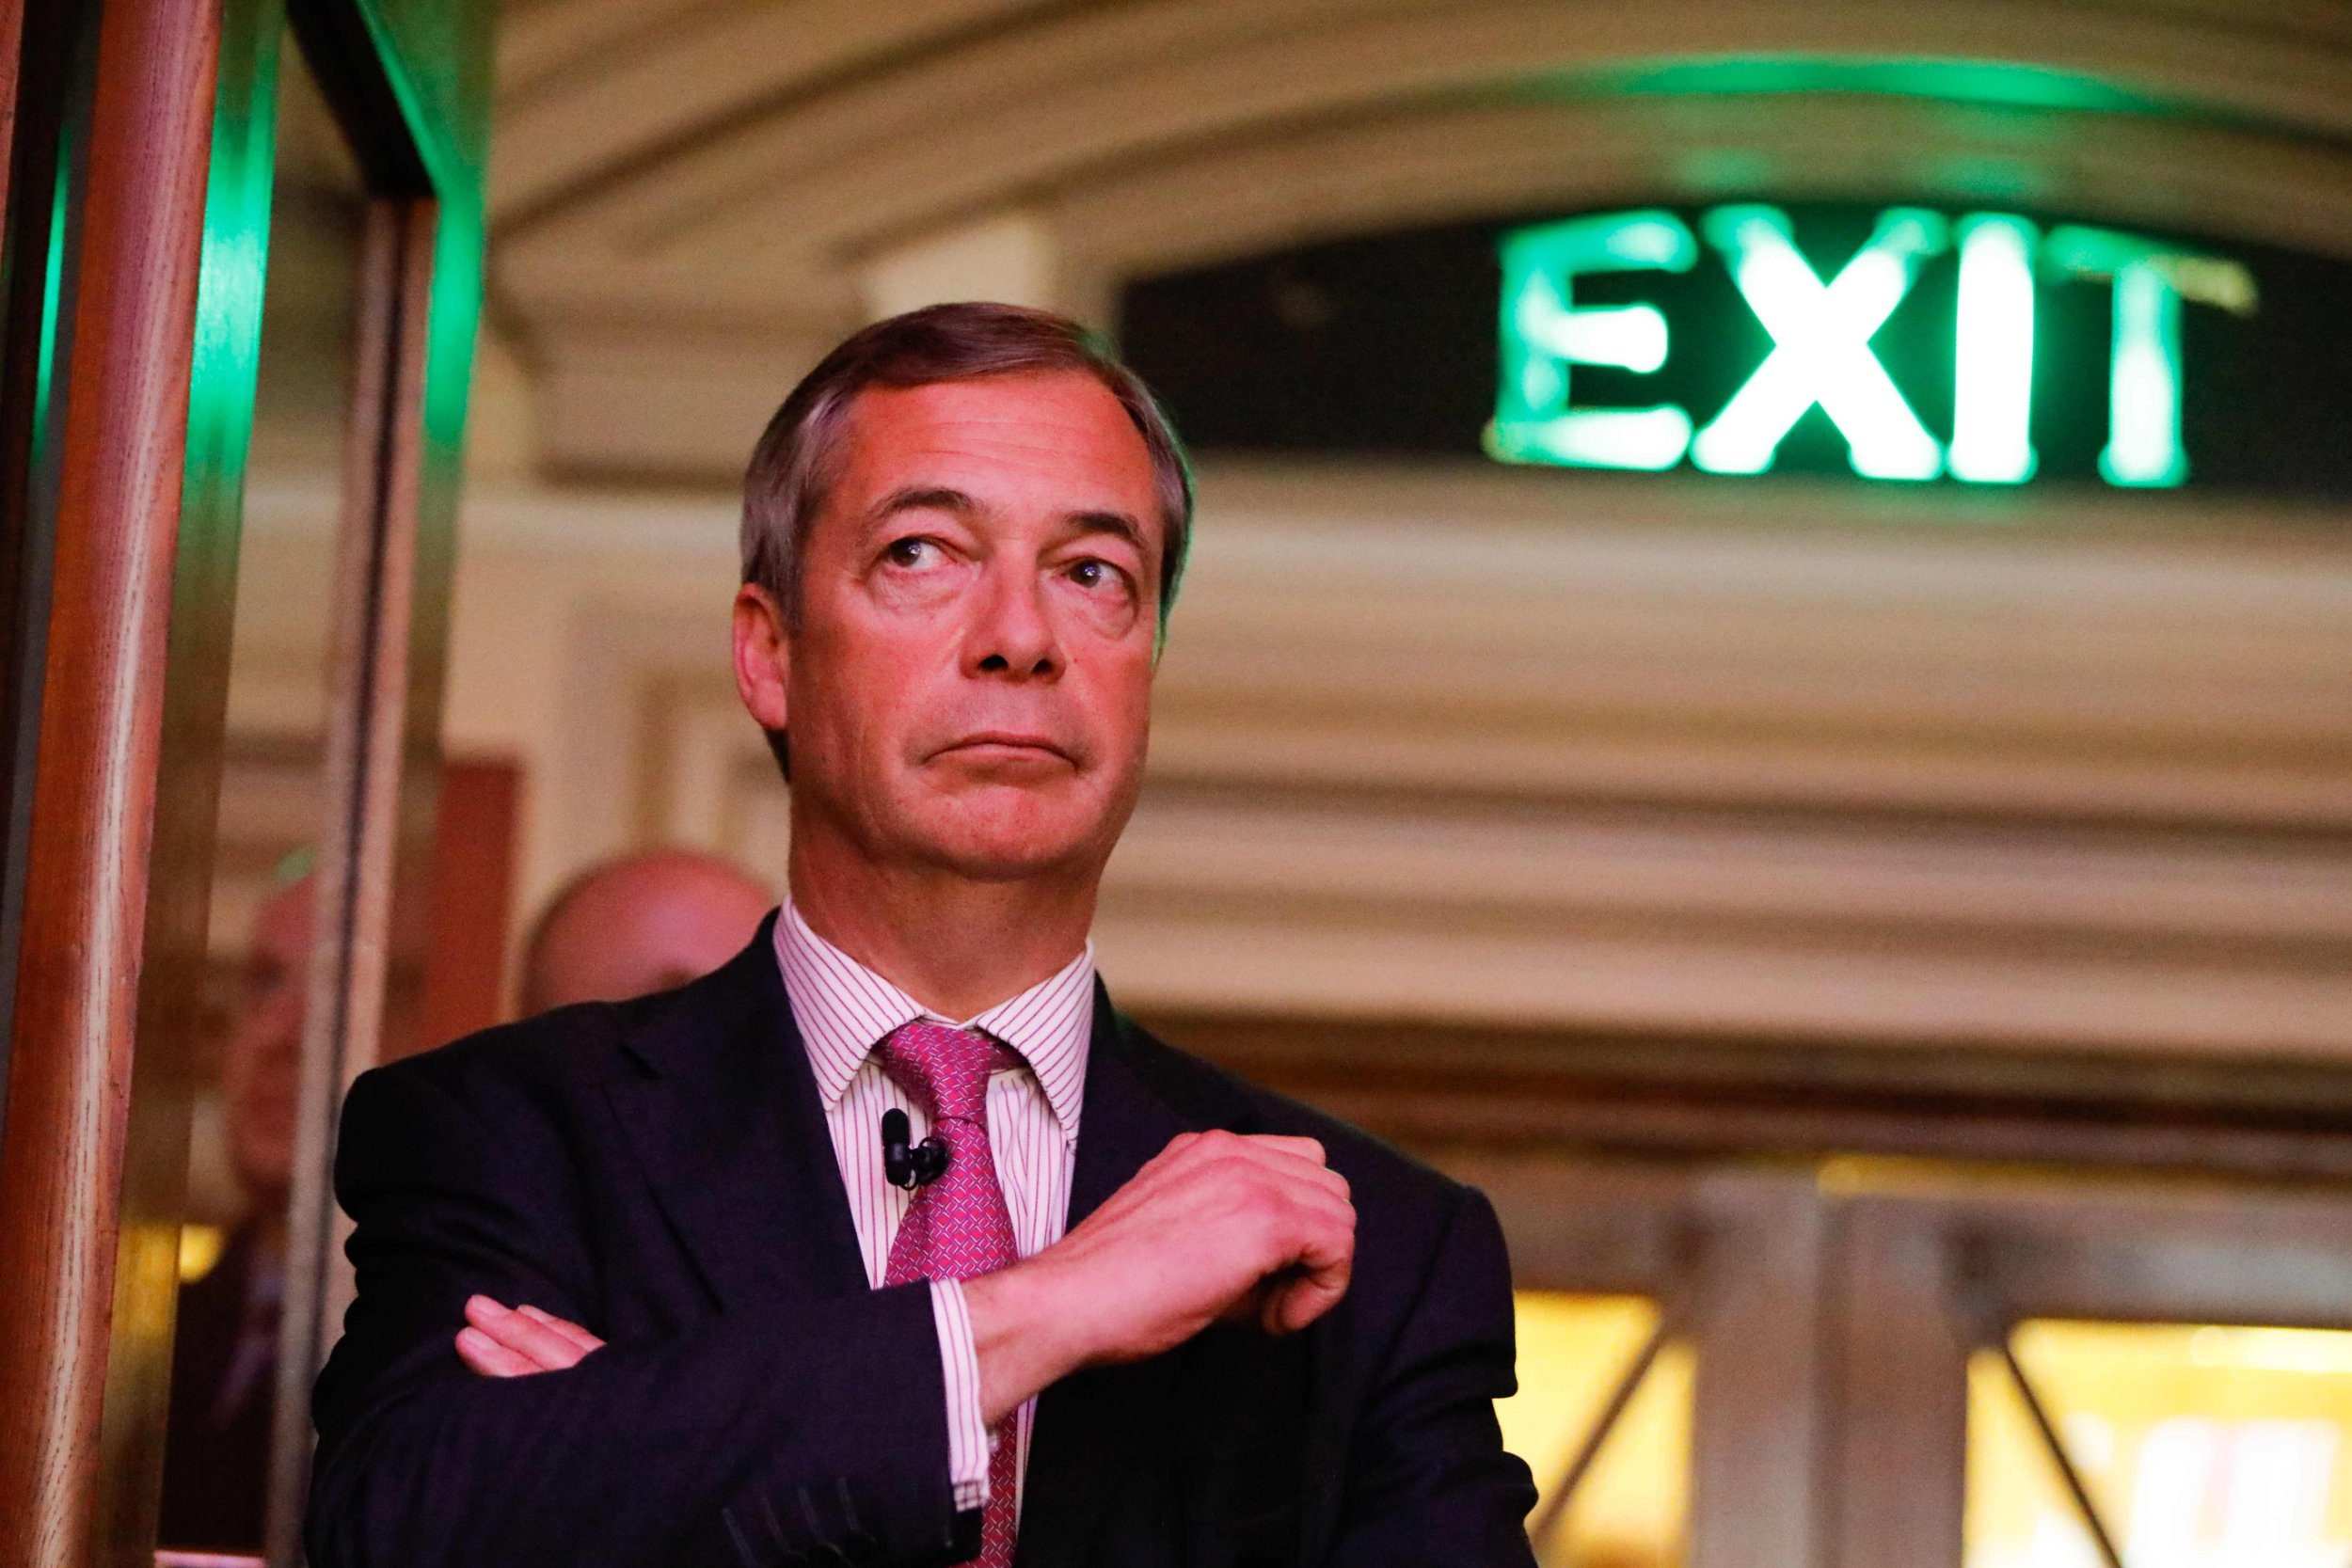 How to join Nigel Farage's new Brexit party?